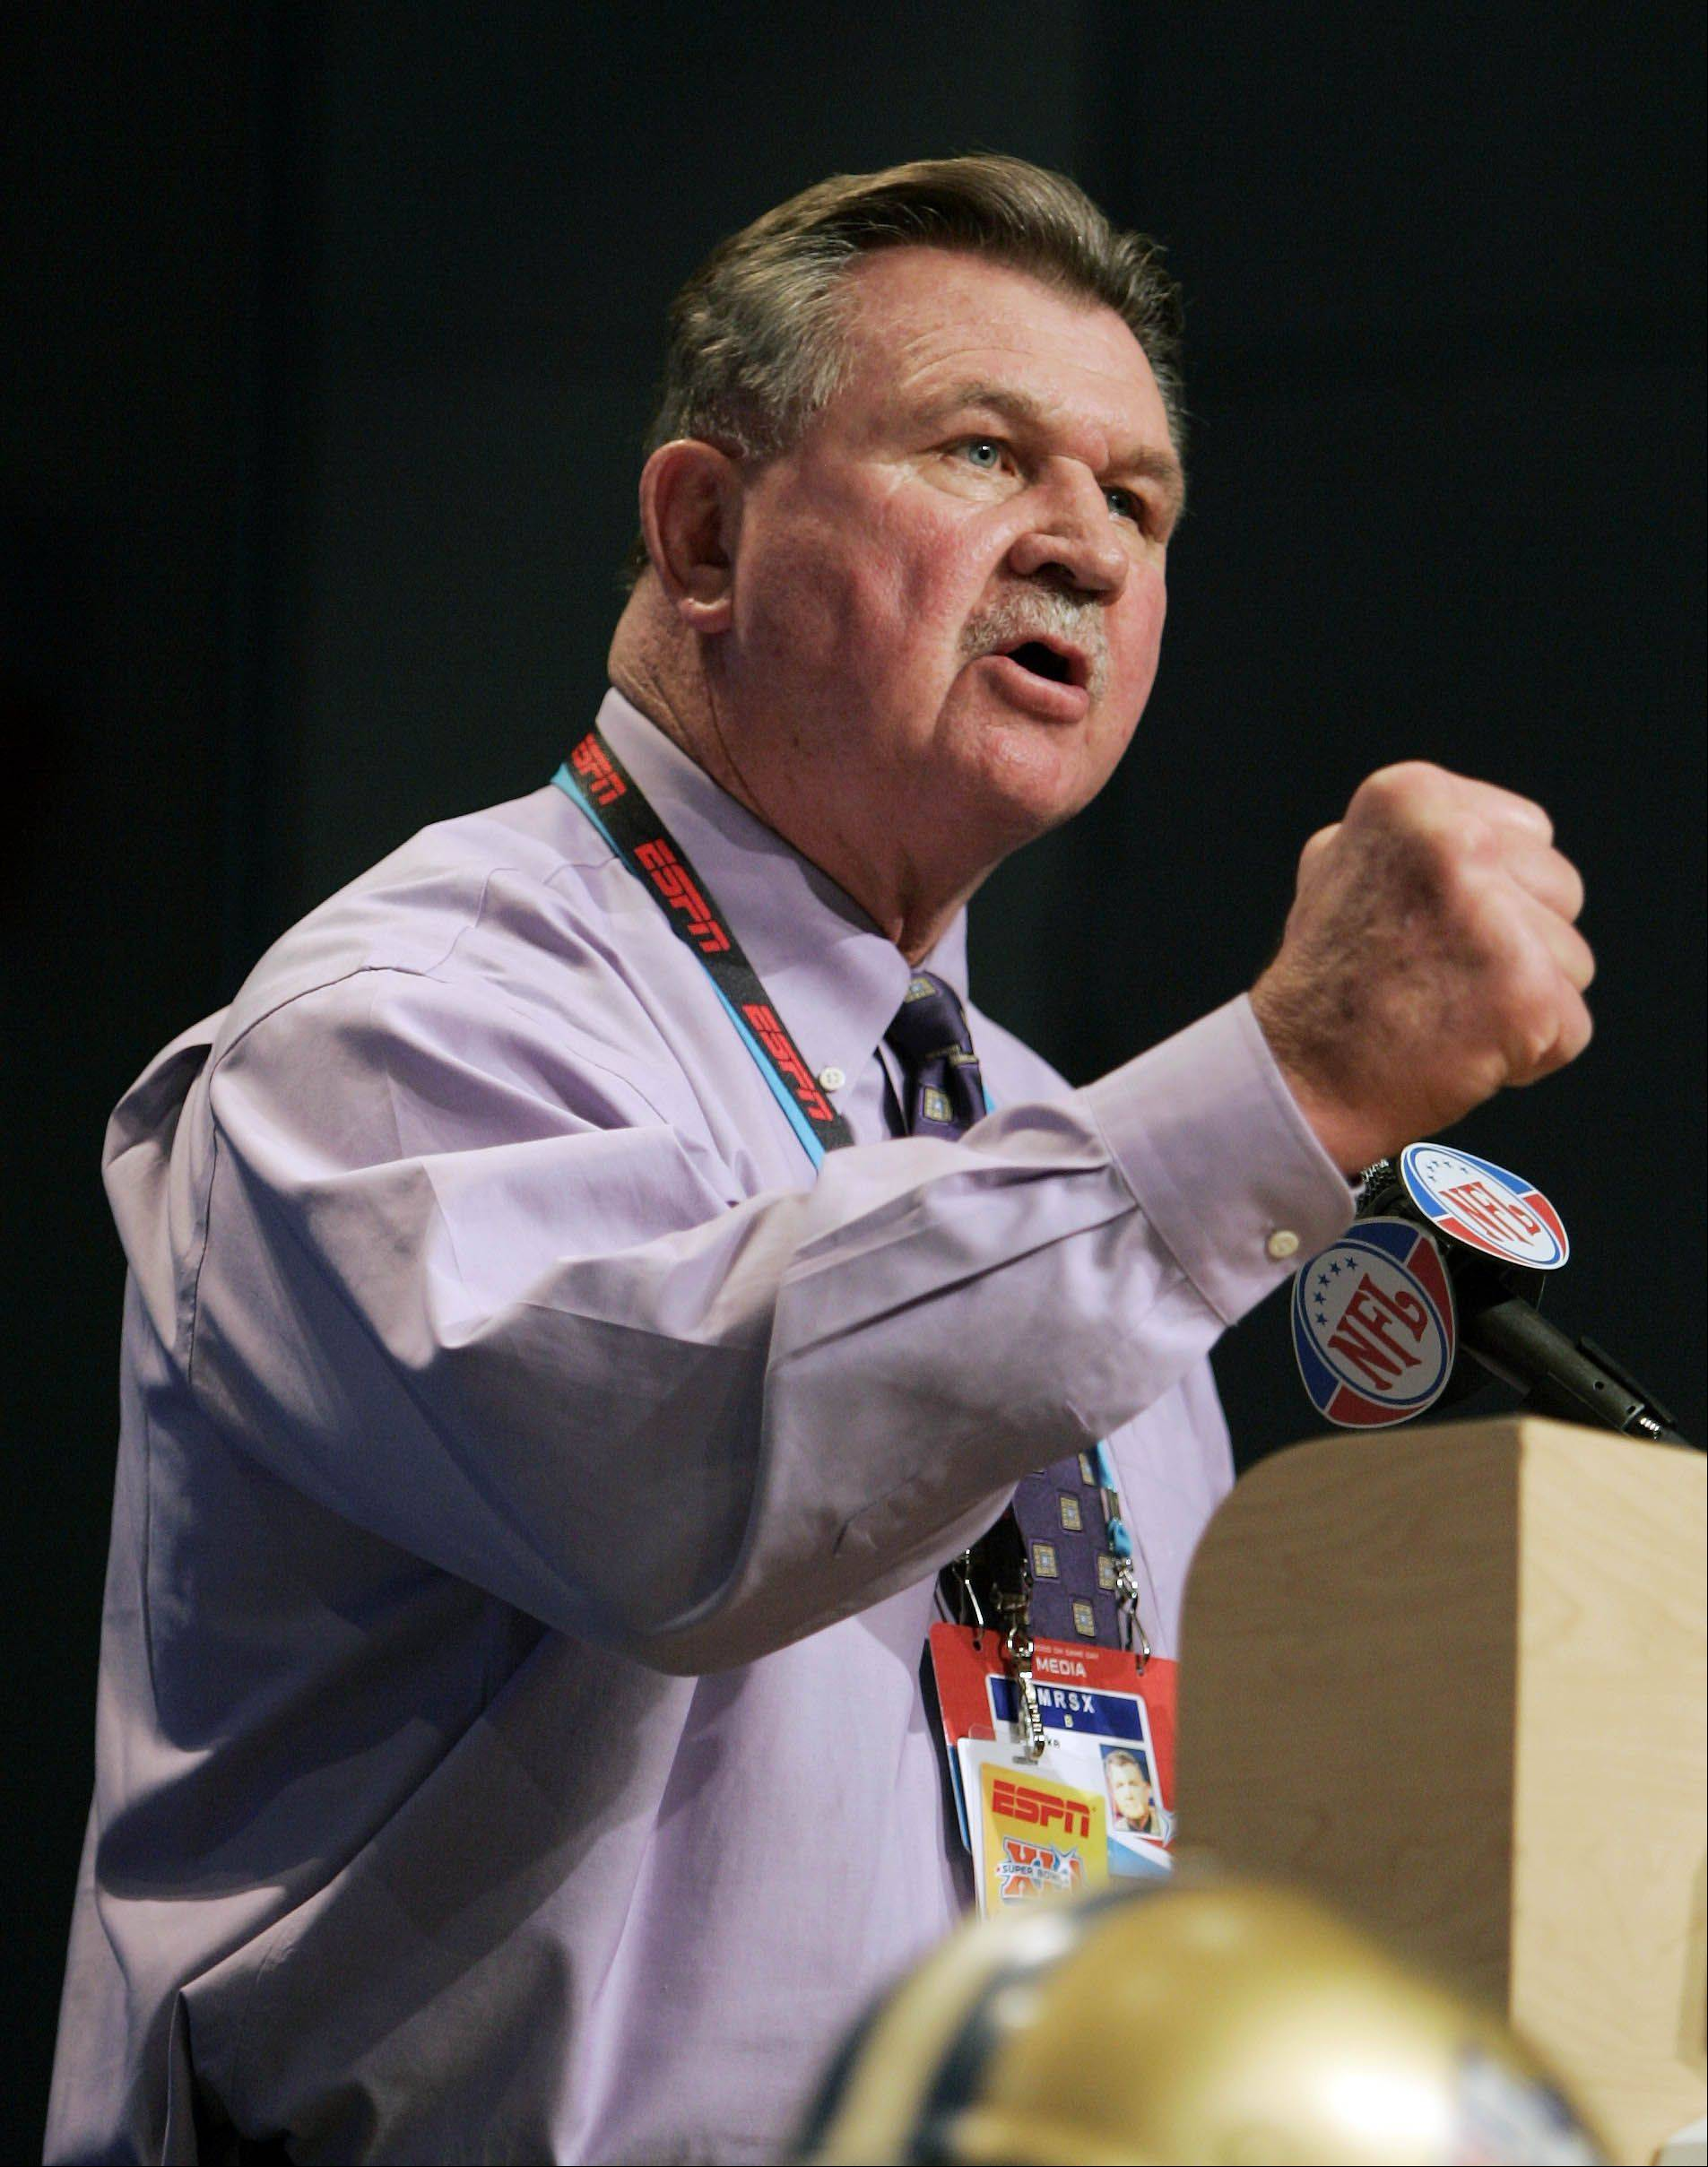 The one and only Mike Ditka will be honored at halftime of Monday night's Bears-Cowboys game at Soldier Field.